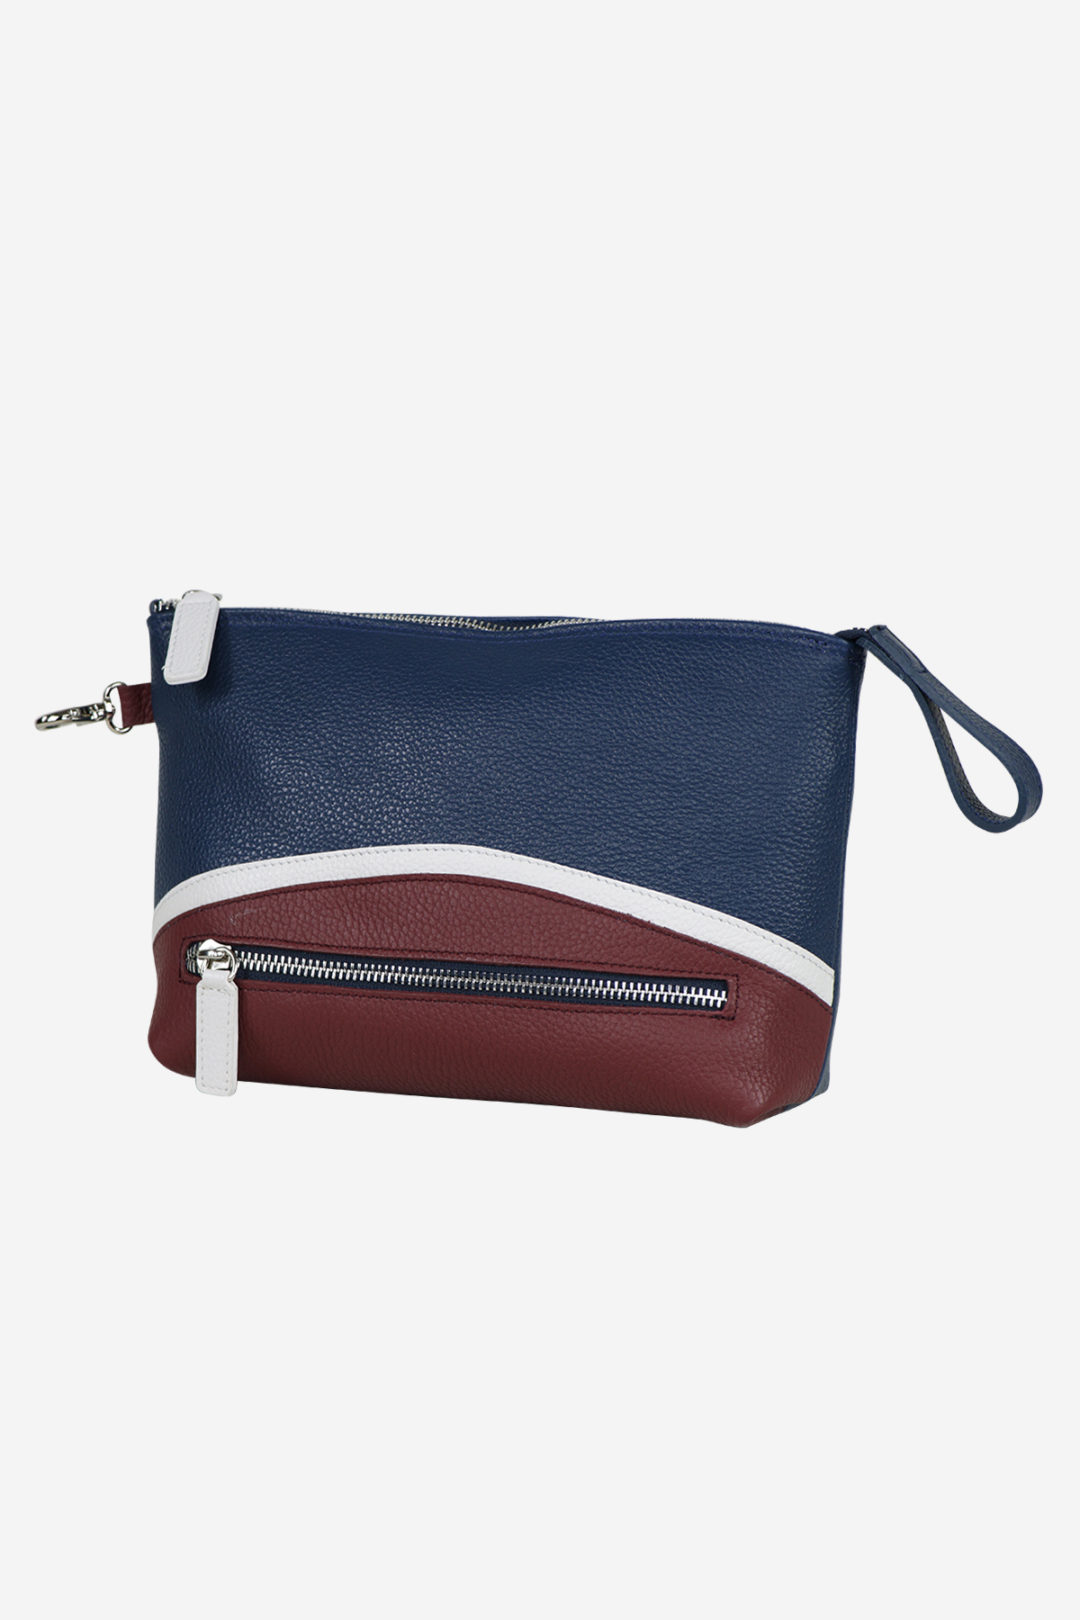 Golf Accessory Slim front waterproof leather white blue red